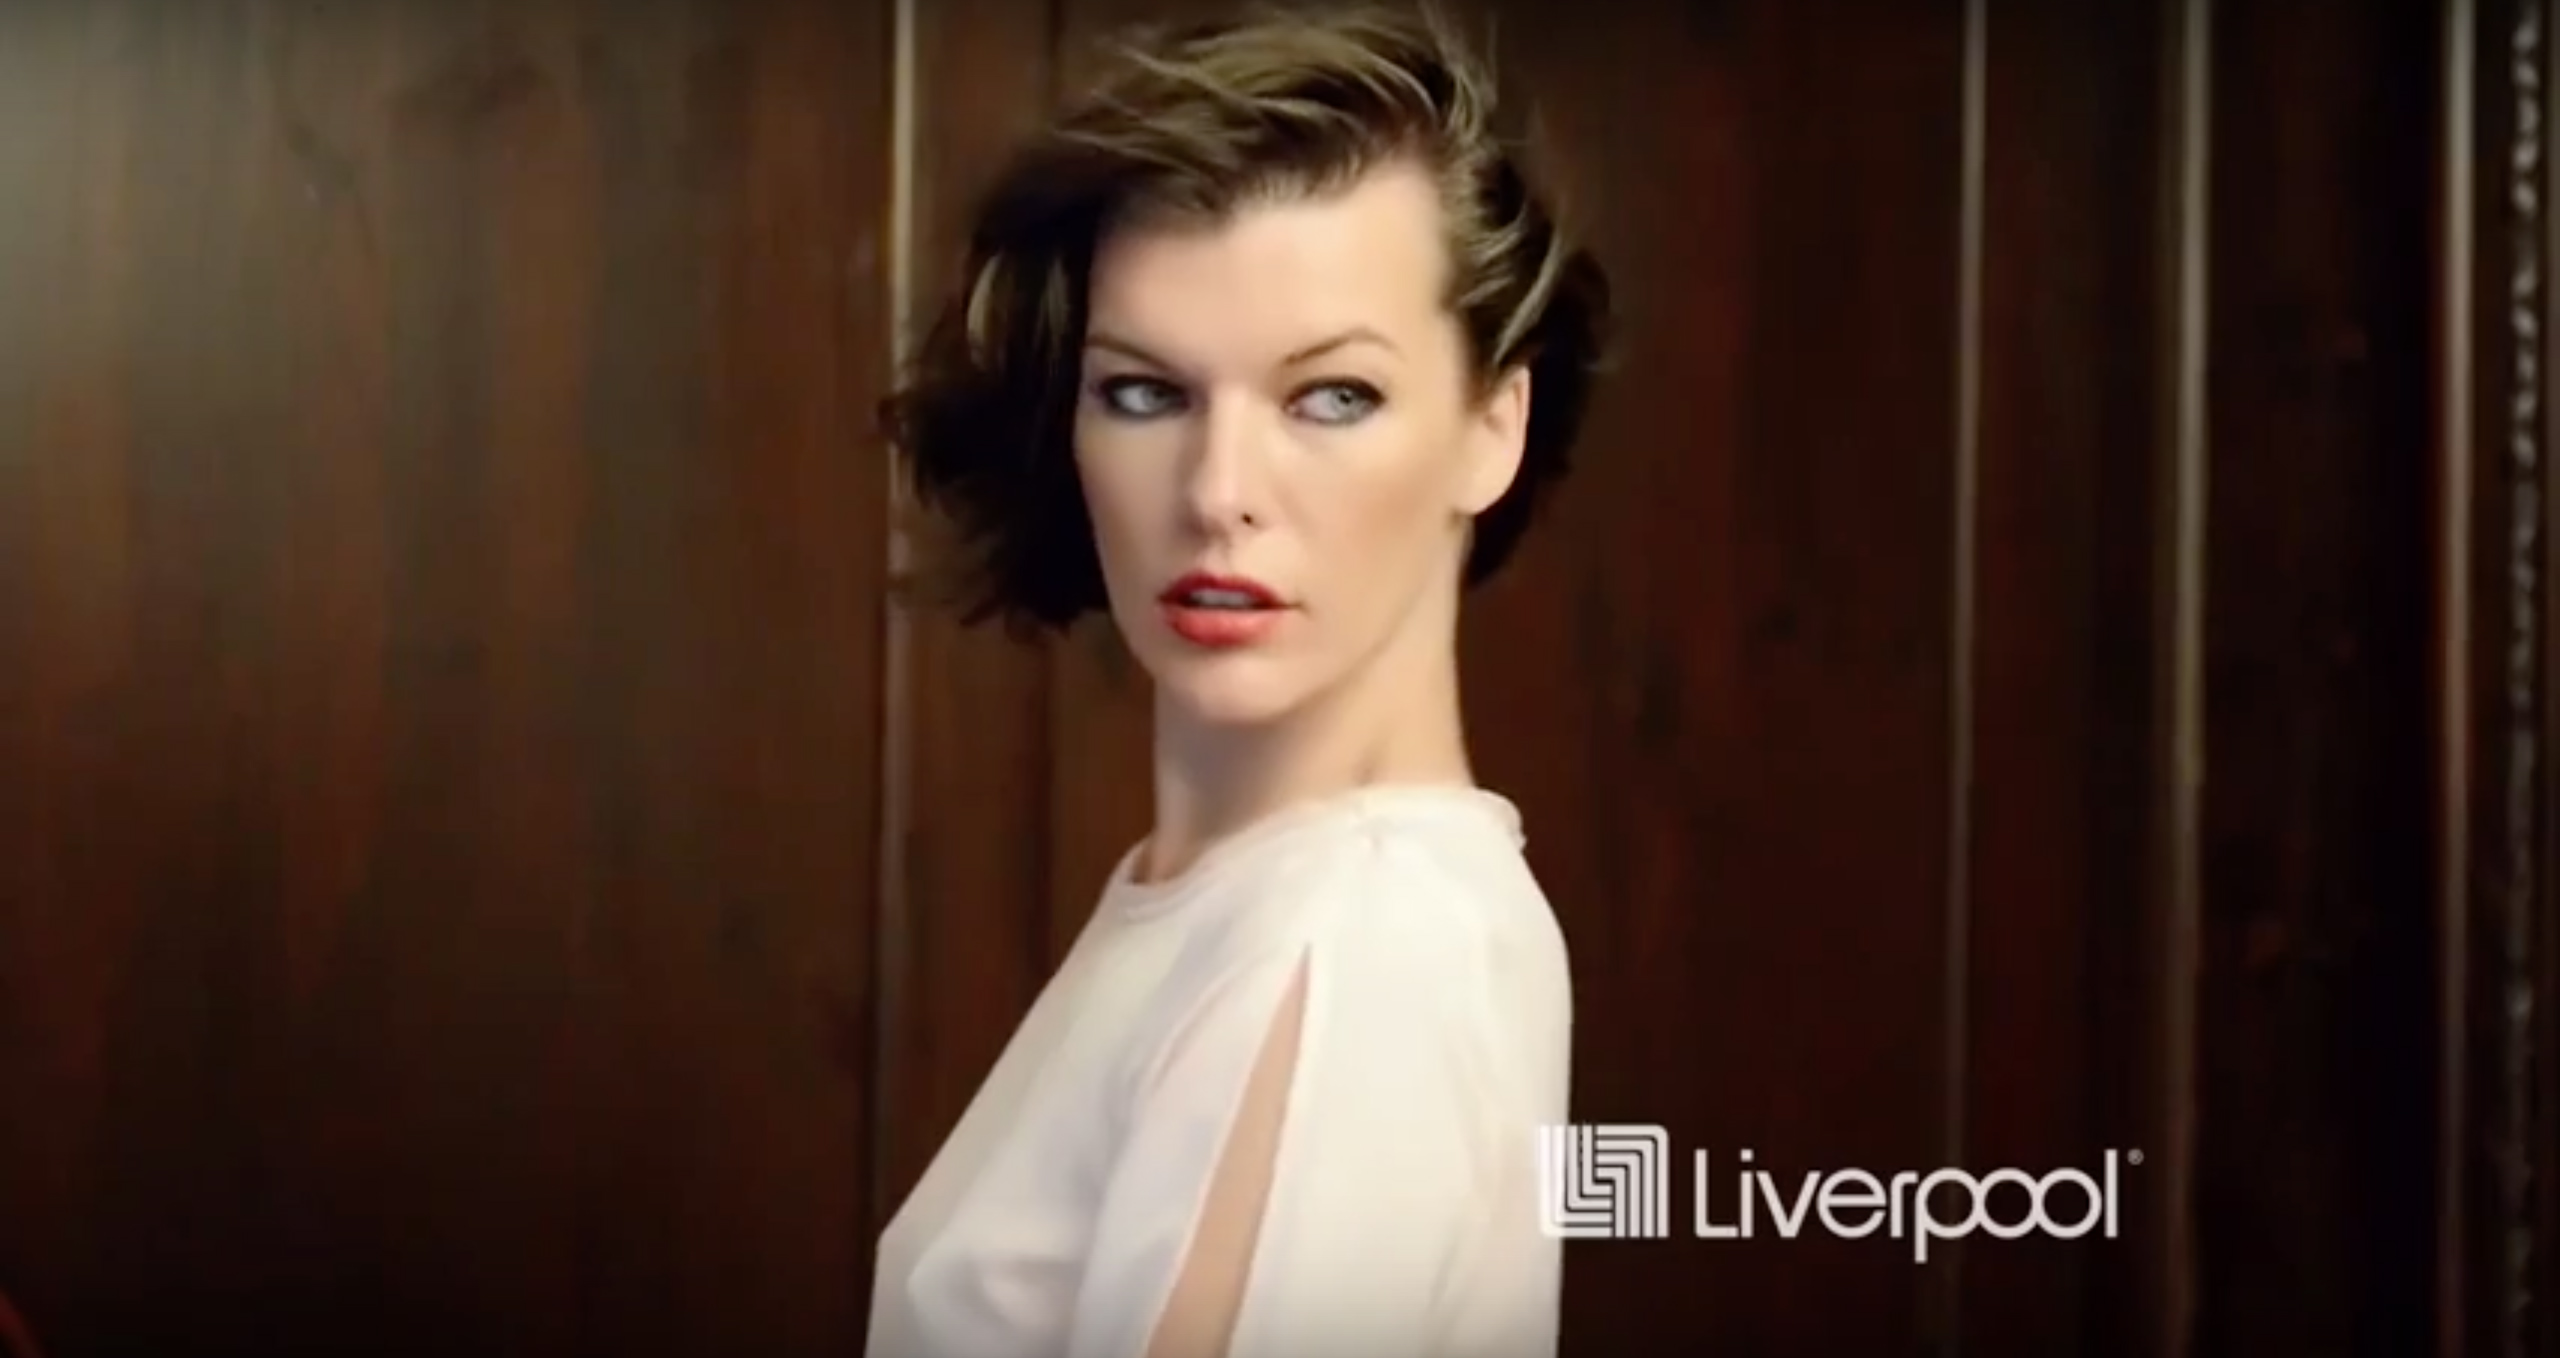 Liverpool Department x Milla Jovovich